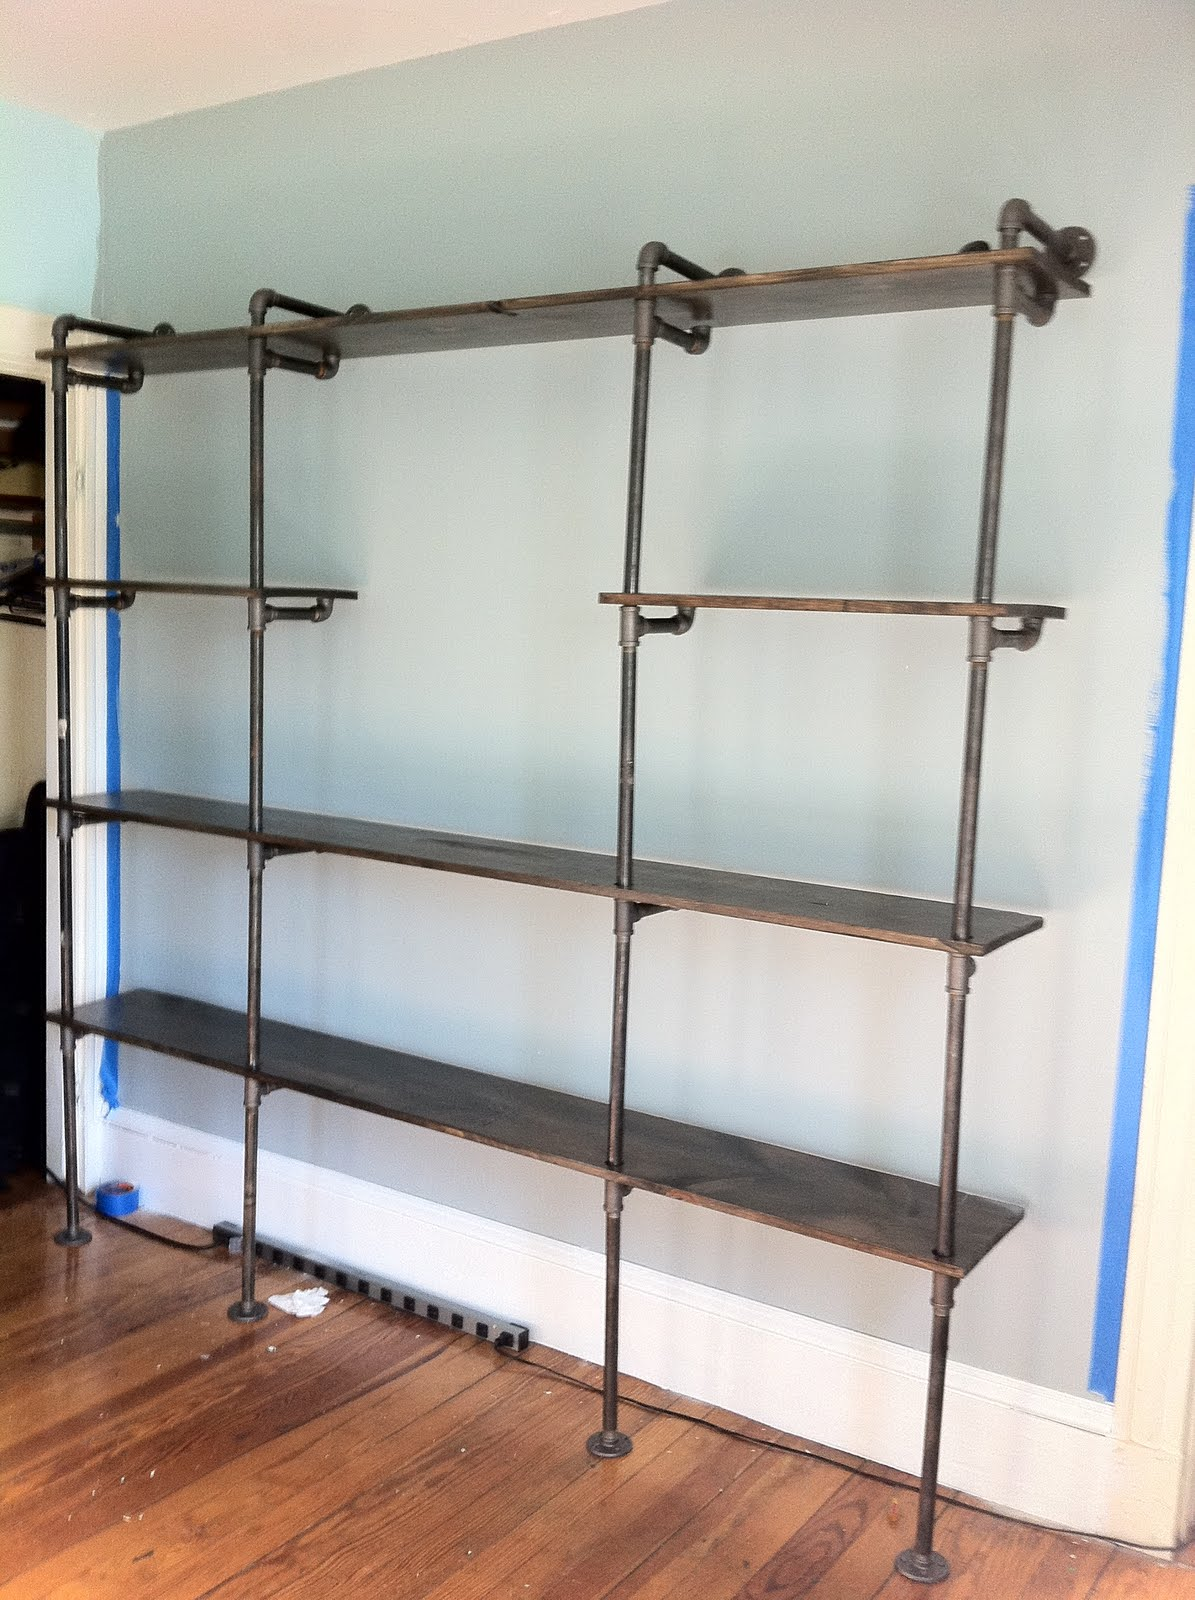 insideways shelving with character